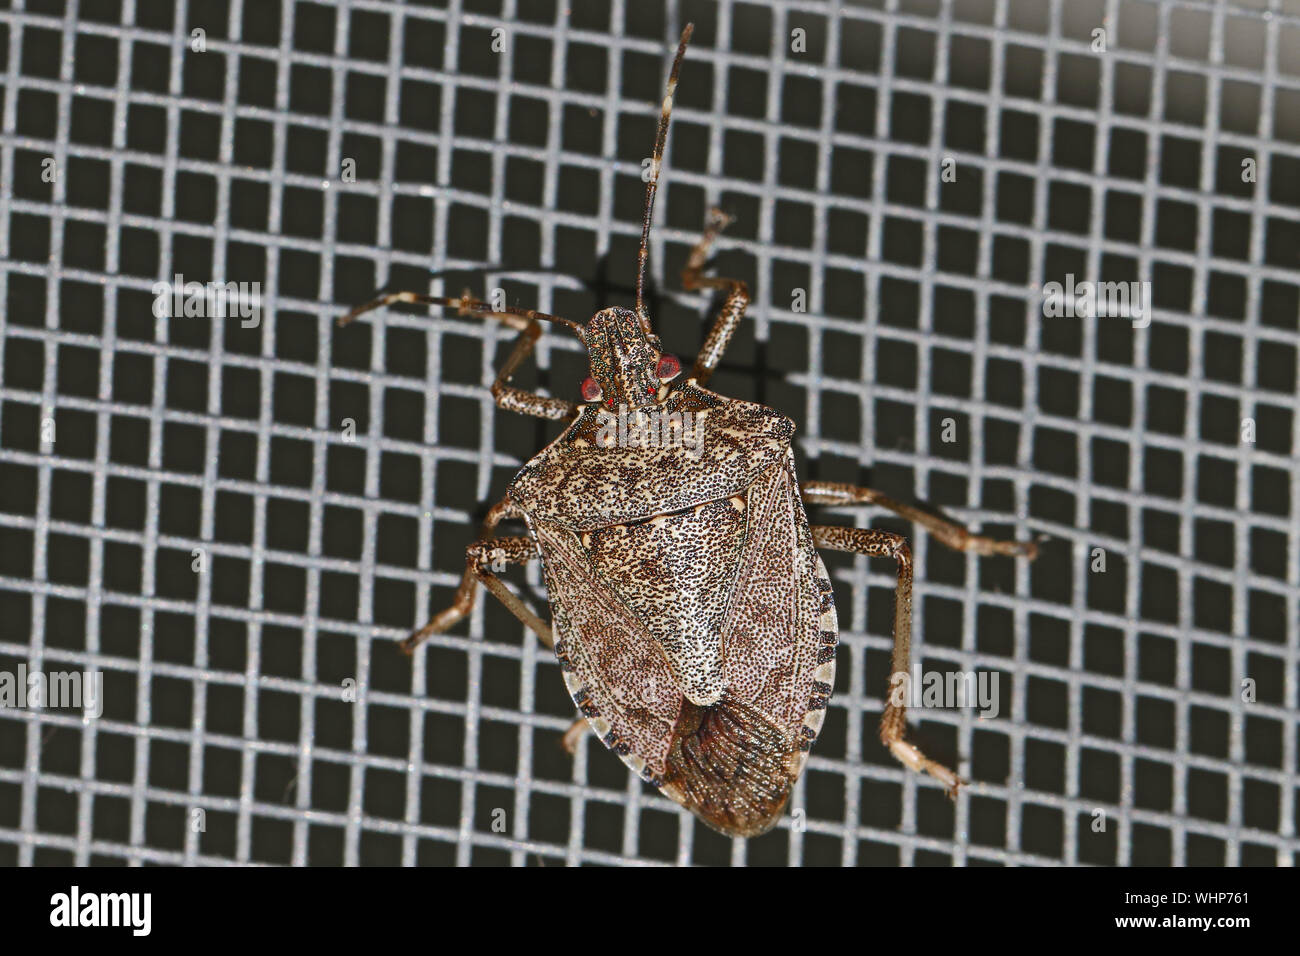 brown marmorated stink bug Latin halyomorpha halys from the pentatomidae family on a screen door in Italy a serious pest in Europe and the USA Stock Photo